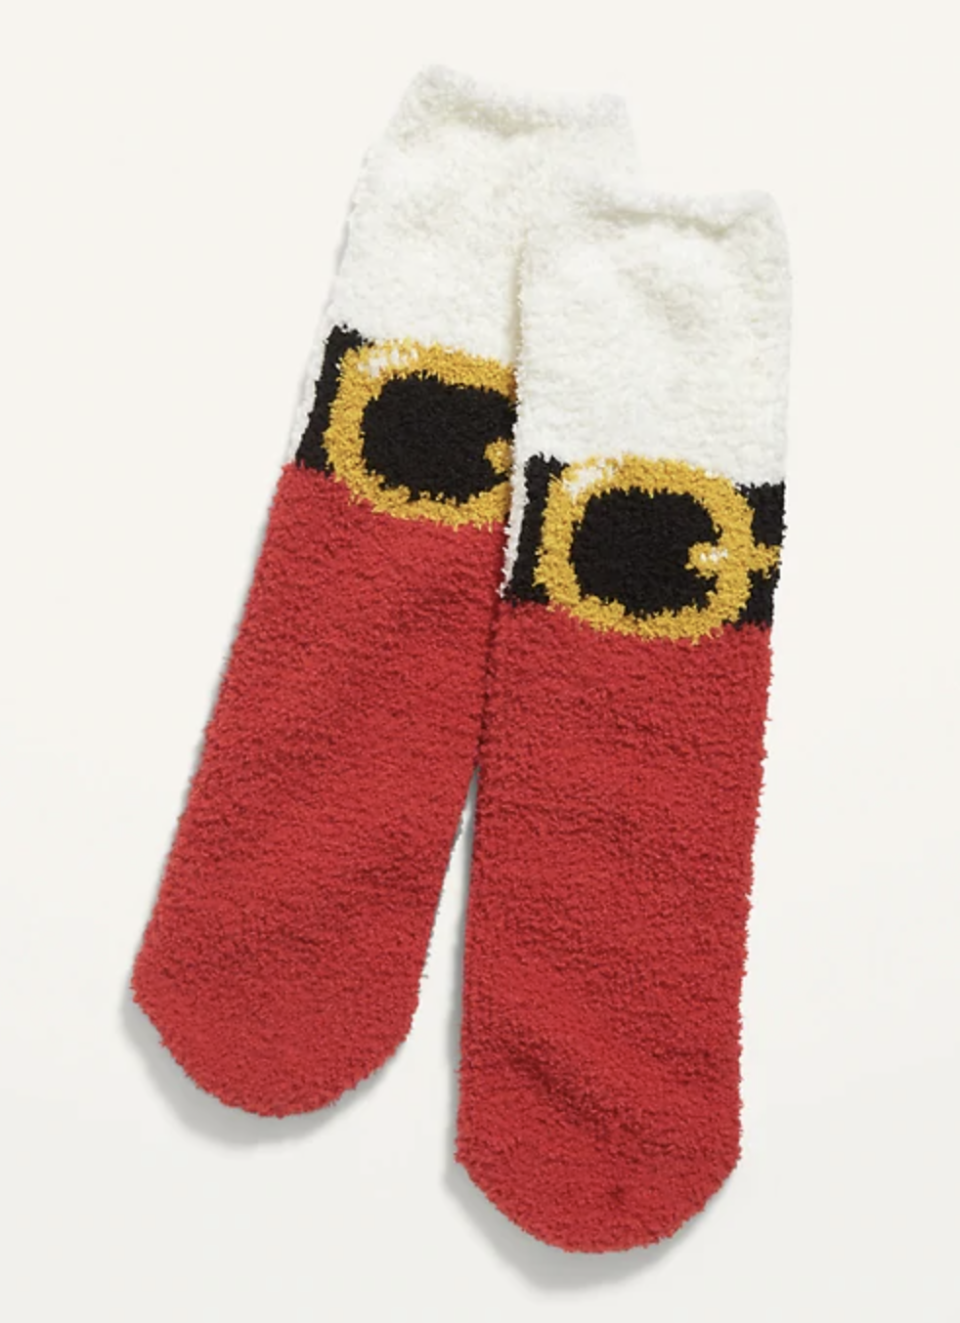 Cozy Crew Socks for women - on sale at Old Navy, $3 (originally $6).